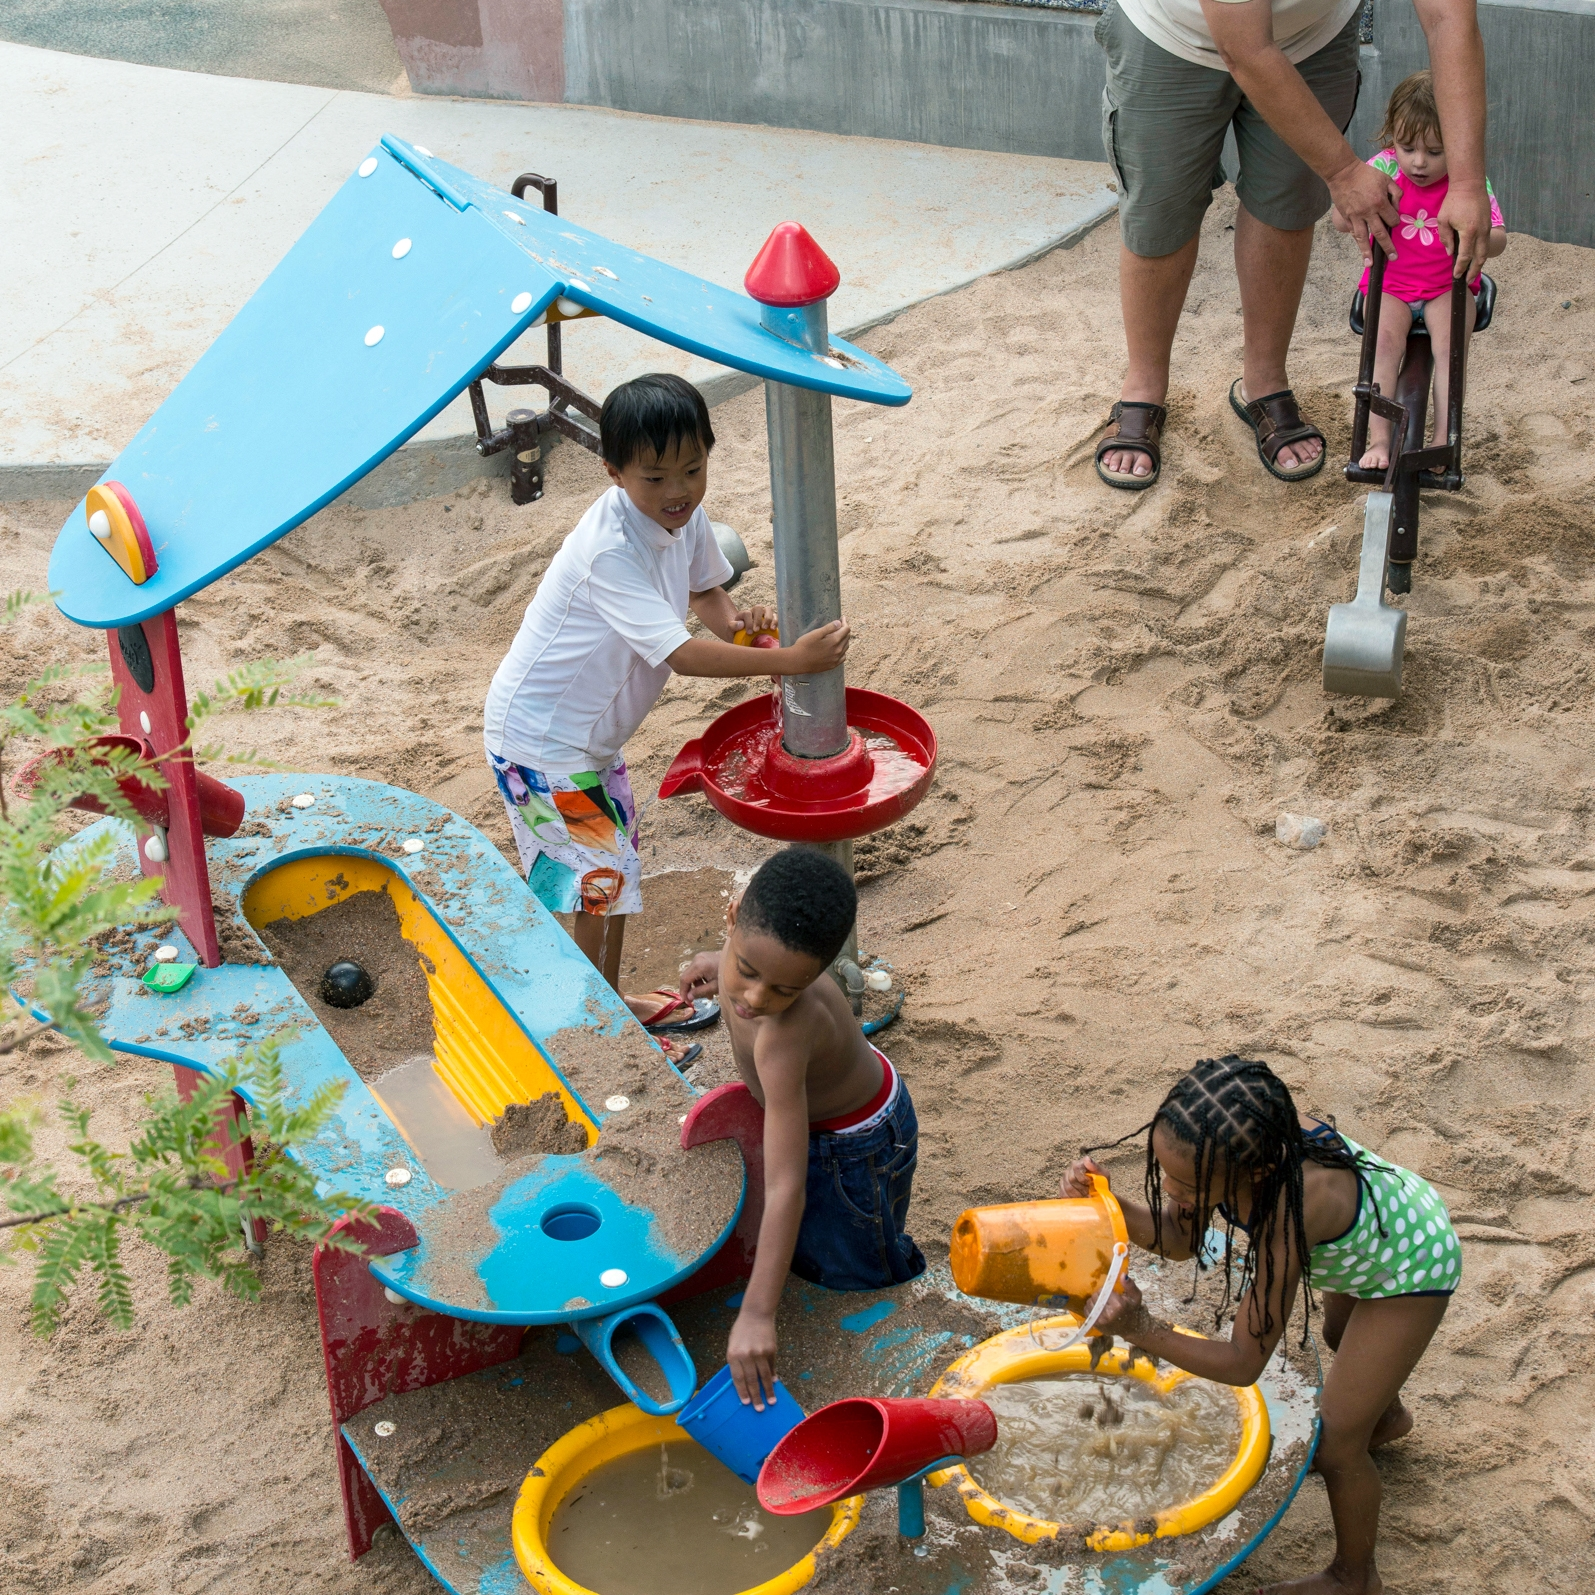 Kids and parents playing in the sand